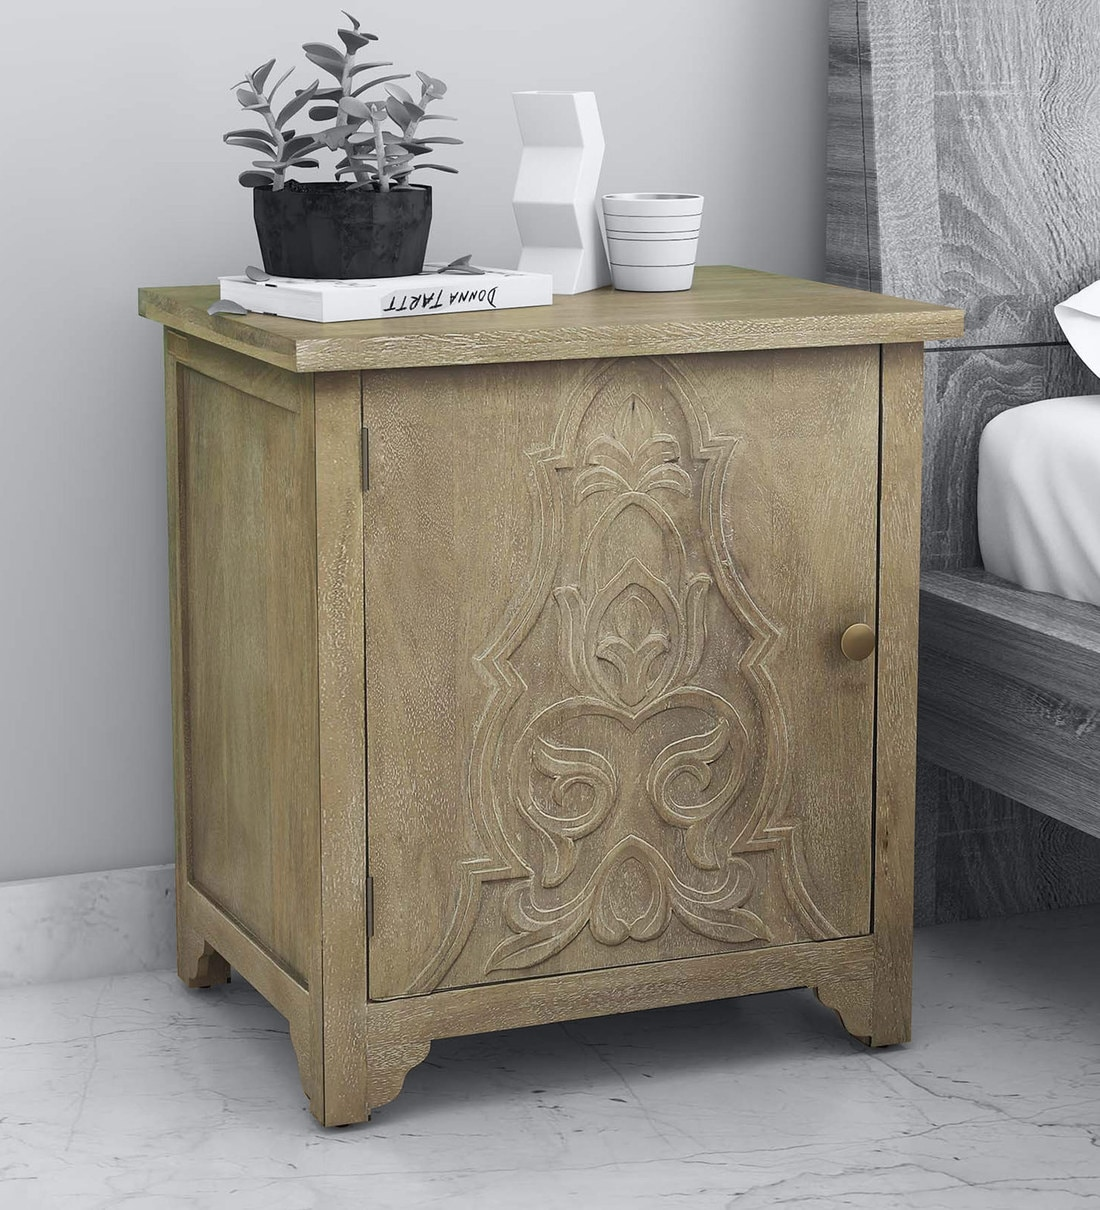 Picture of: Buy Zenith Solid Wood Carved Lhs Bedside Cabinet In White Wash Finish By Mudramark Online Bedside Cabinets Tables Furniture Pepperfry Product